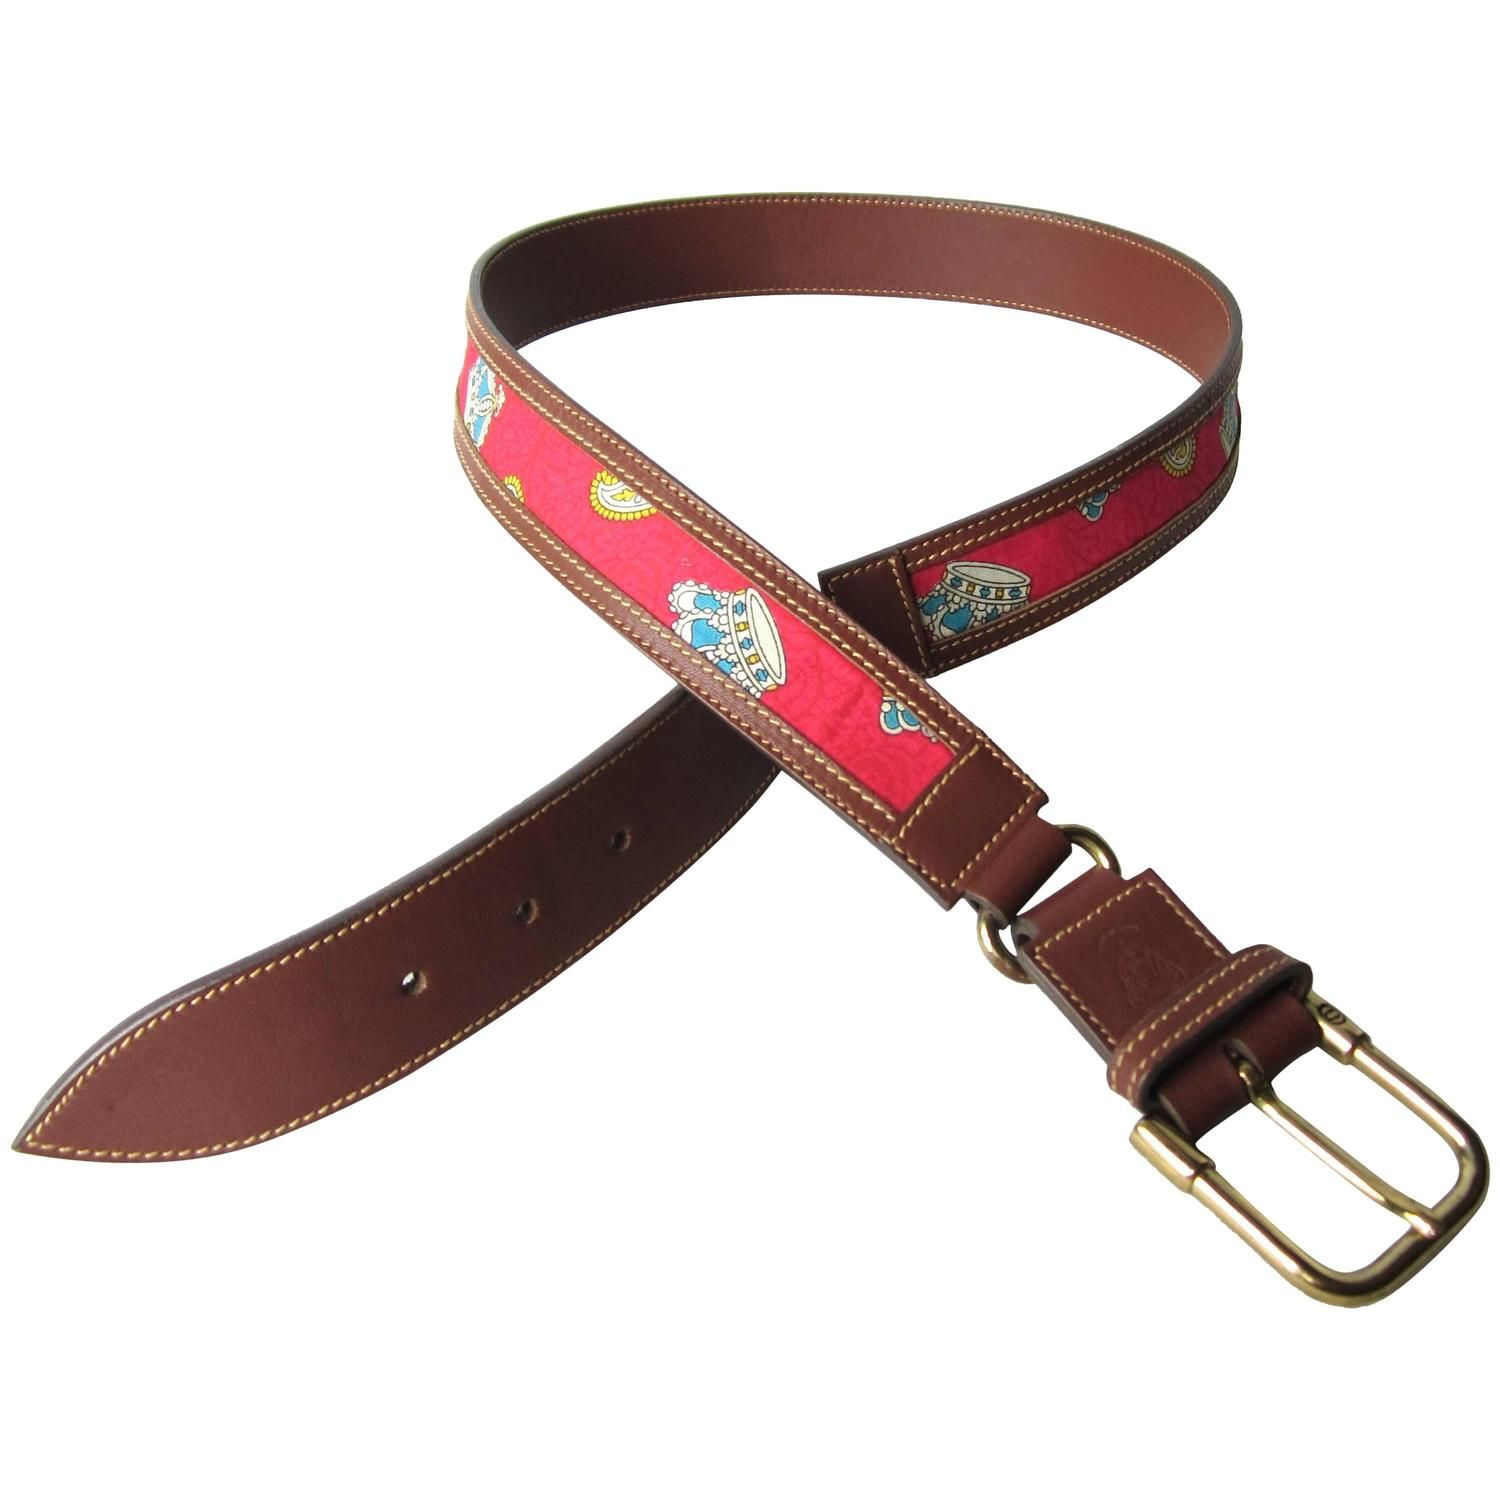 1990s Gucci Leather King Belt New Old Stock From a